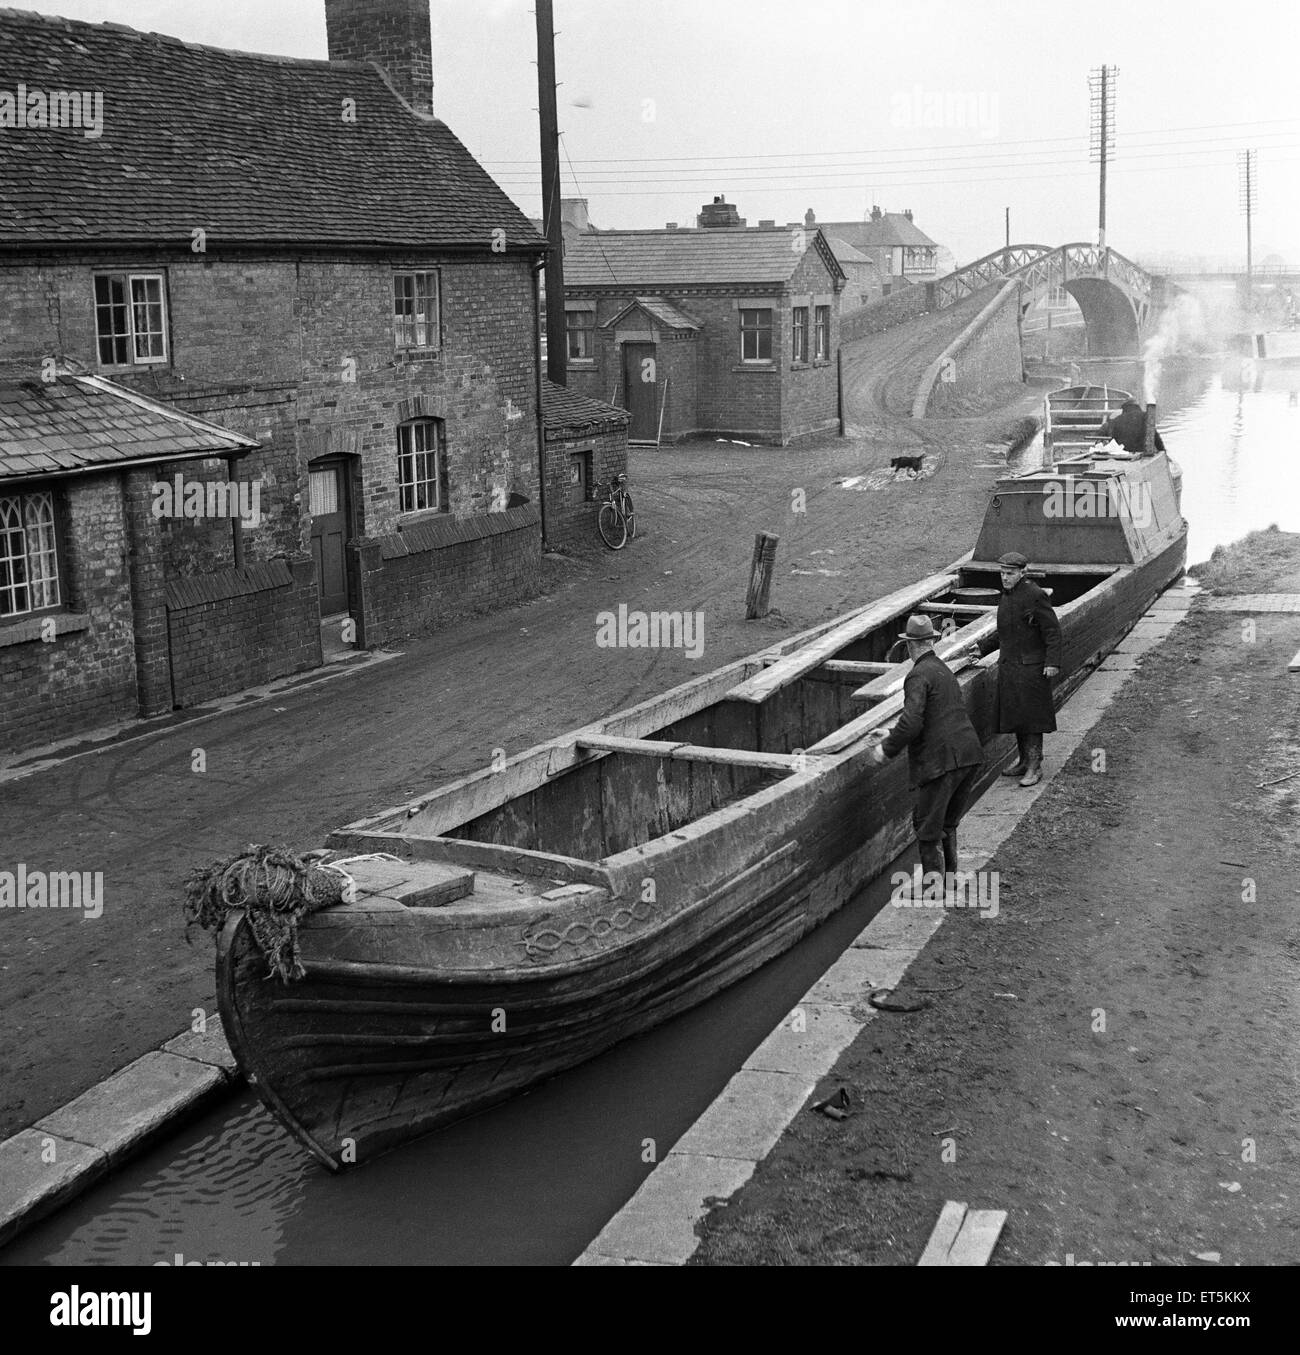 Canal scenes. April 1954 - Stock Image